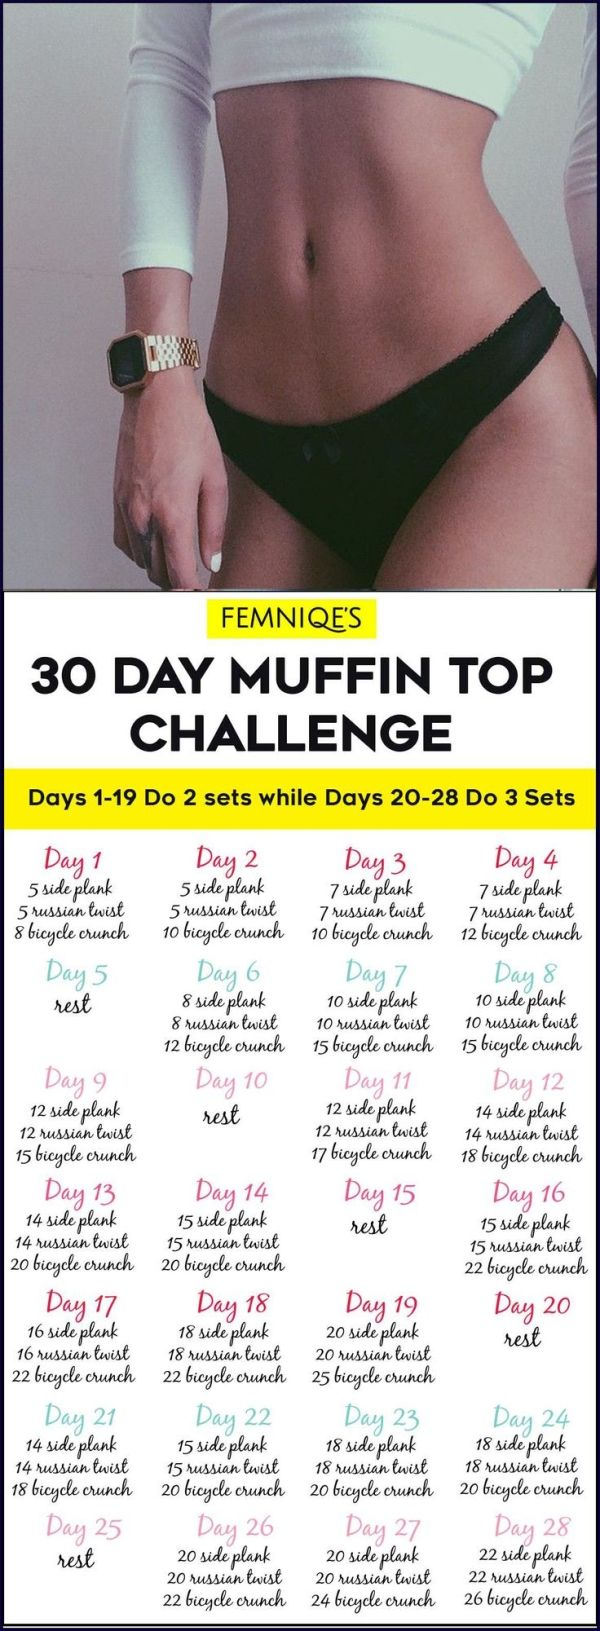 How do you get a V-cut stomach in less than a month?